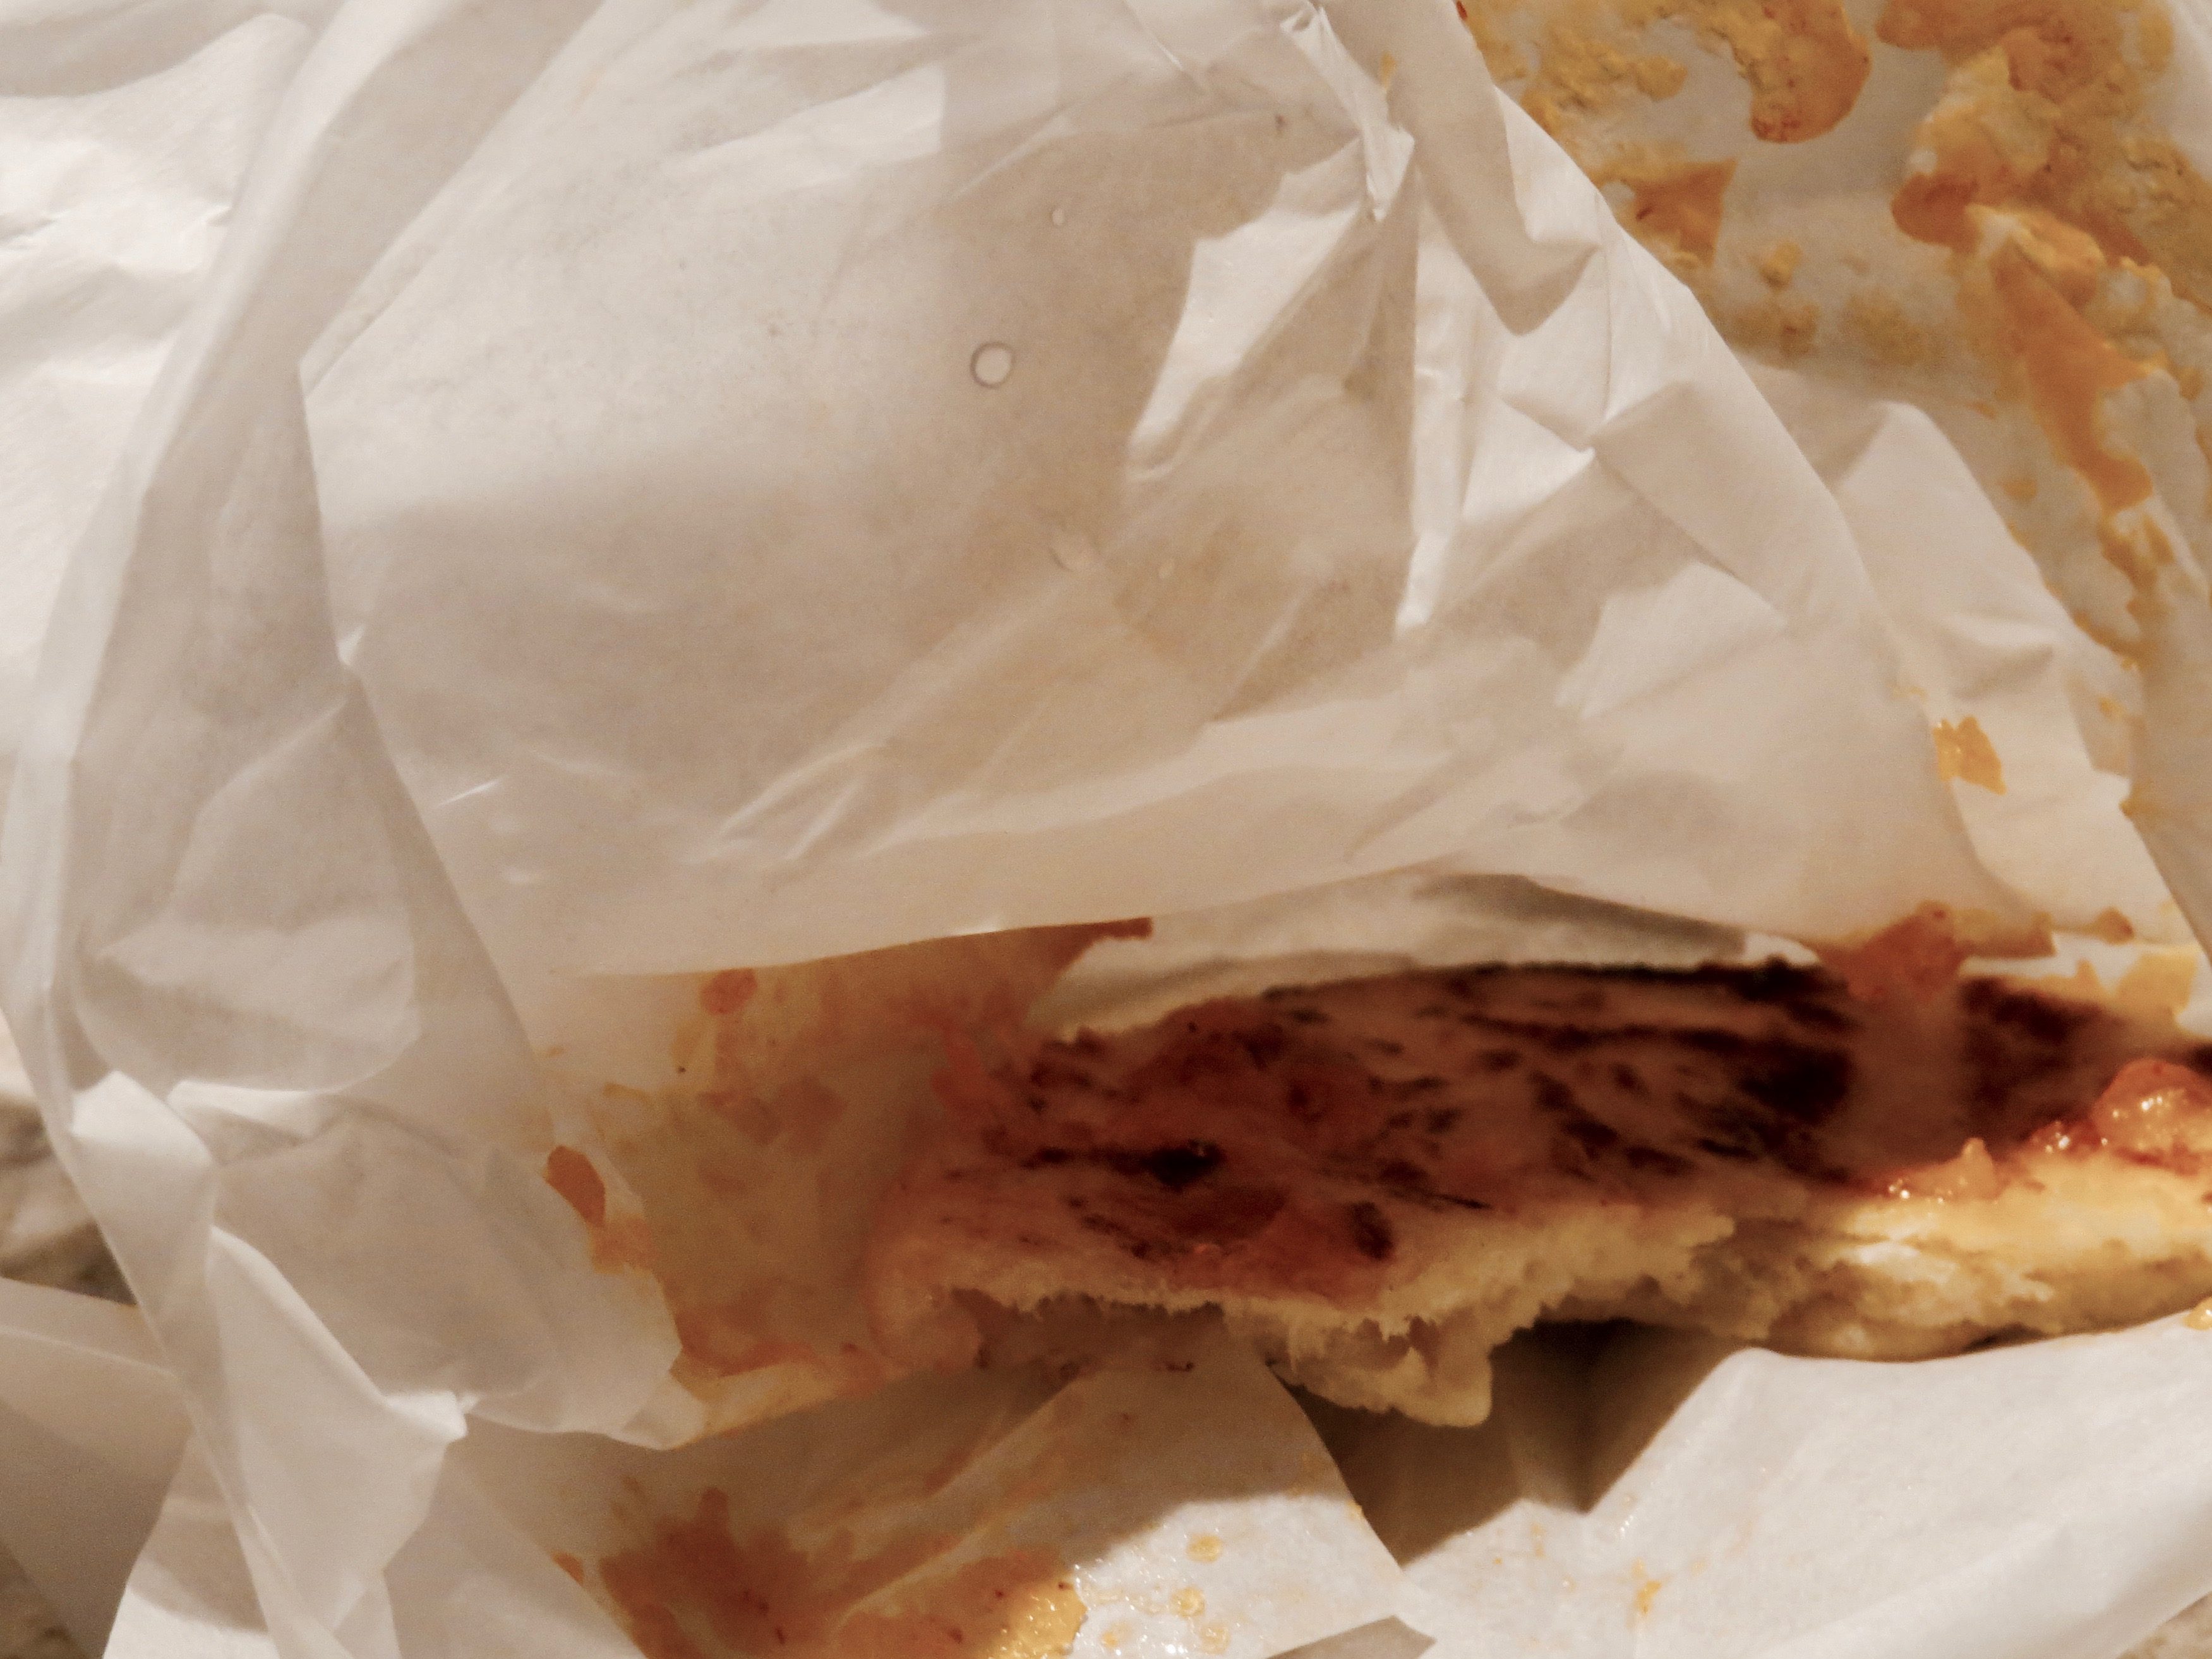 STREET FOOD. WHAT'S LEFT? JUST THE WRAPPER.